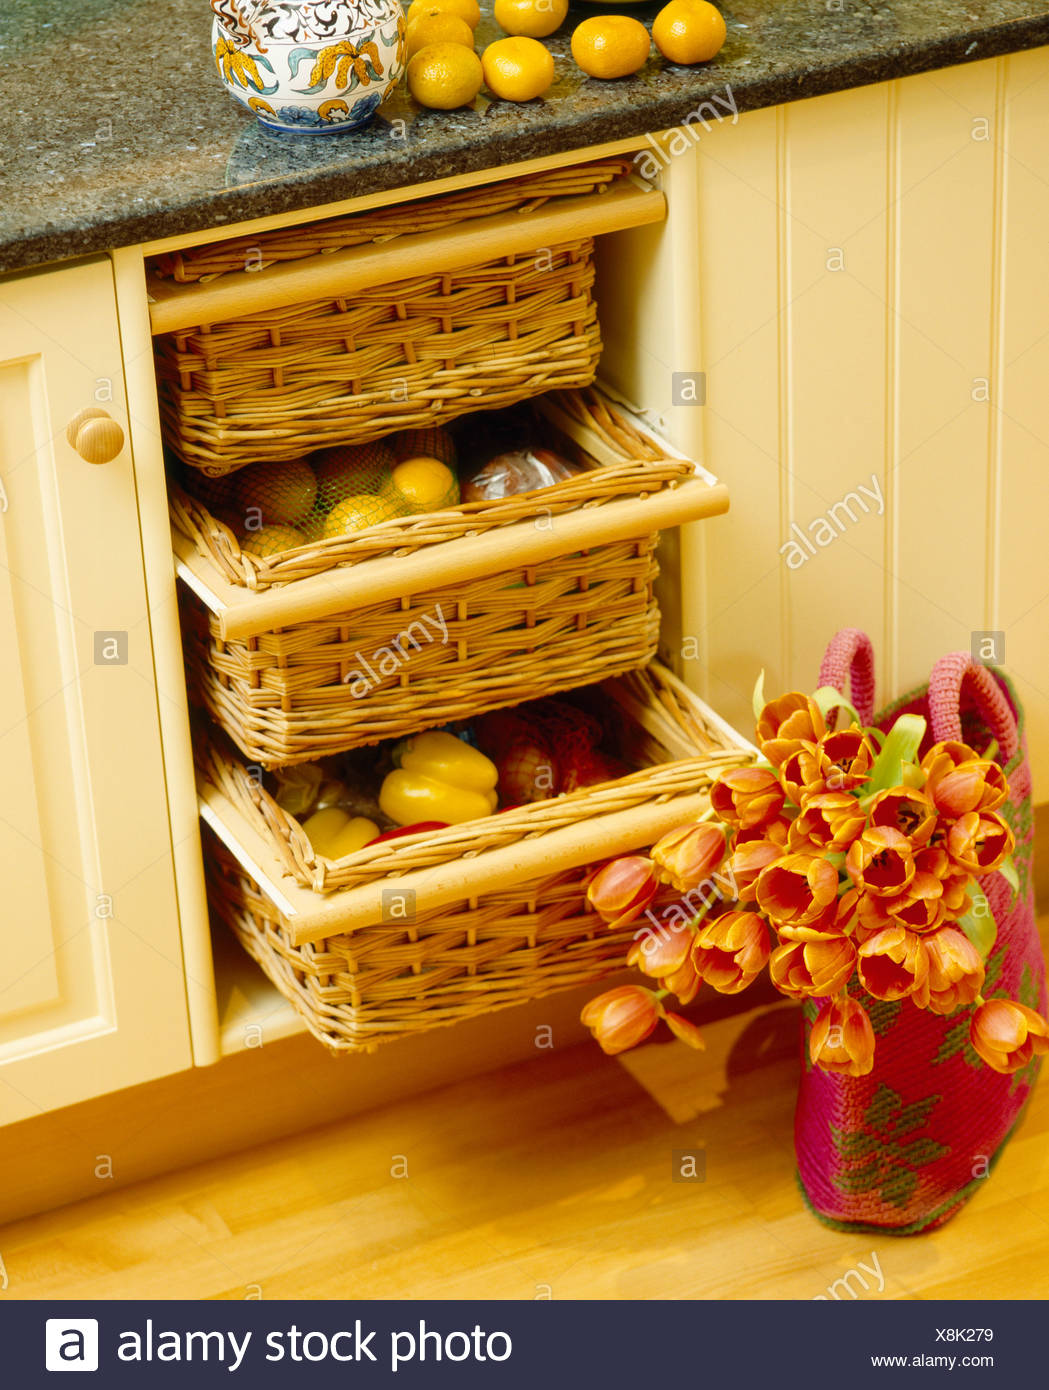 Close Up Of Orange Tulips In Basket On Floor Beside Storage Baskets In  Fitted Kitchen Unit